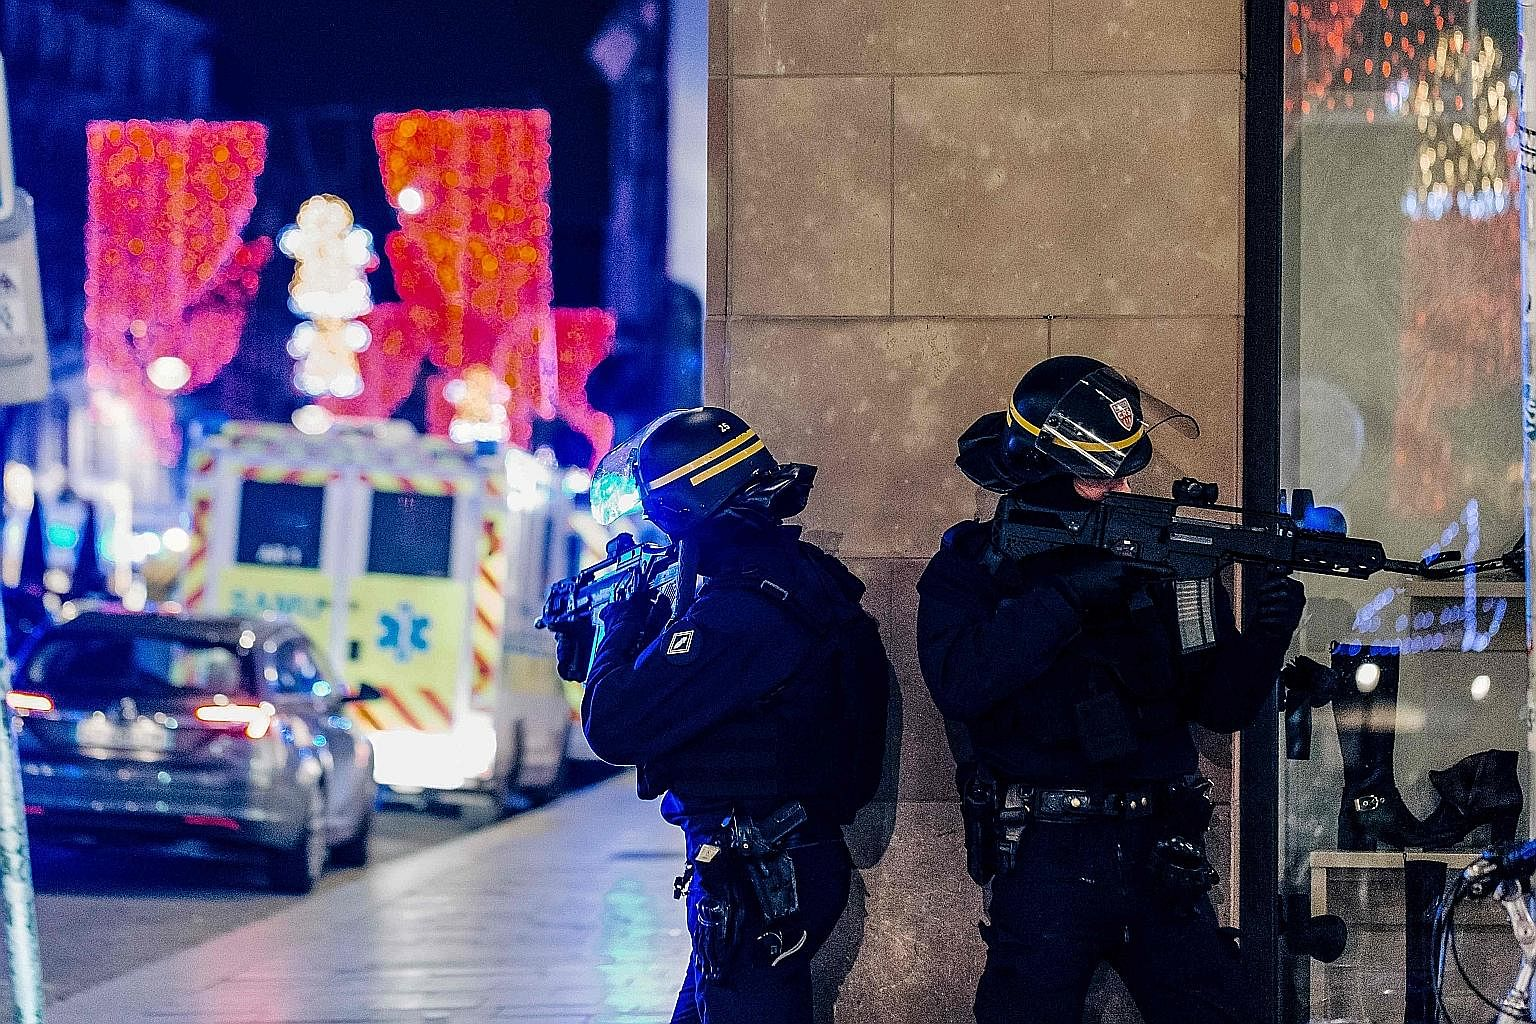 Police officers standing guard near the scene of a shooting on Tuesday in Strasbourg, eastern France, where a manhunt was launched for a gunman who killed at least two people near the city's famed Christmas market. Police identified the suspect as re